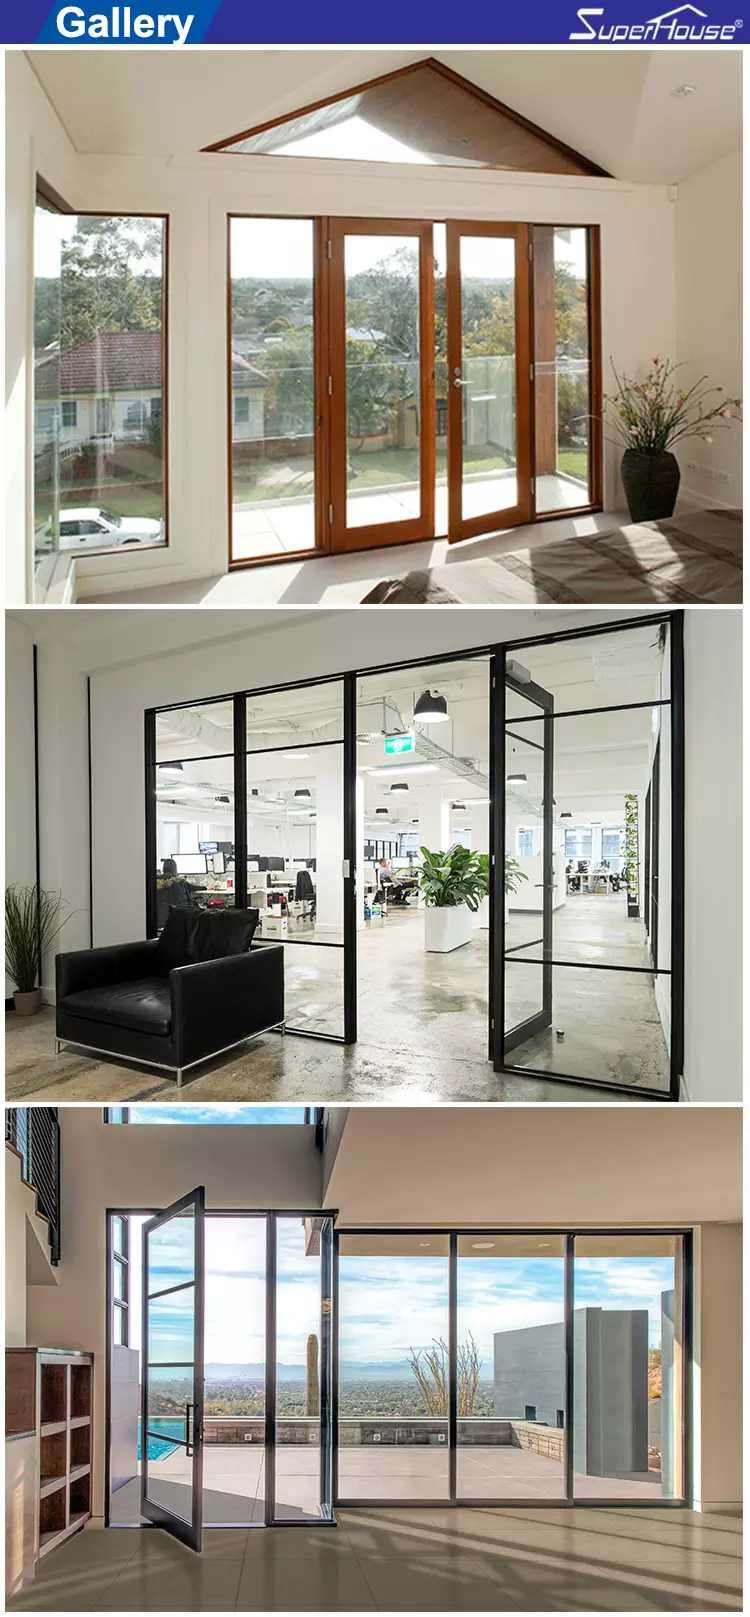 AS2047 NFRC AAMA NAFS NOA standard Thermal break double glass aluminium french doors for sales